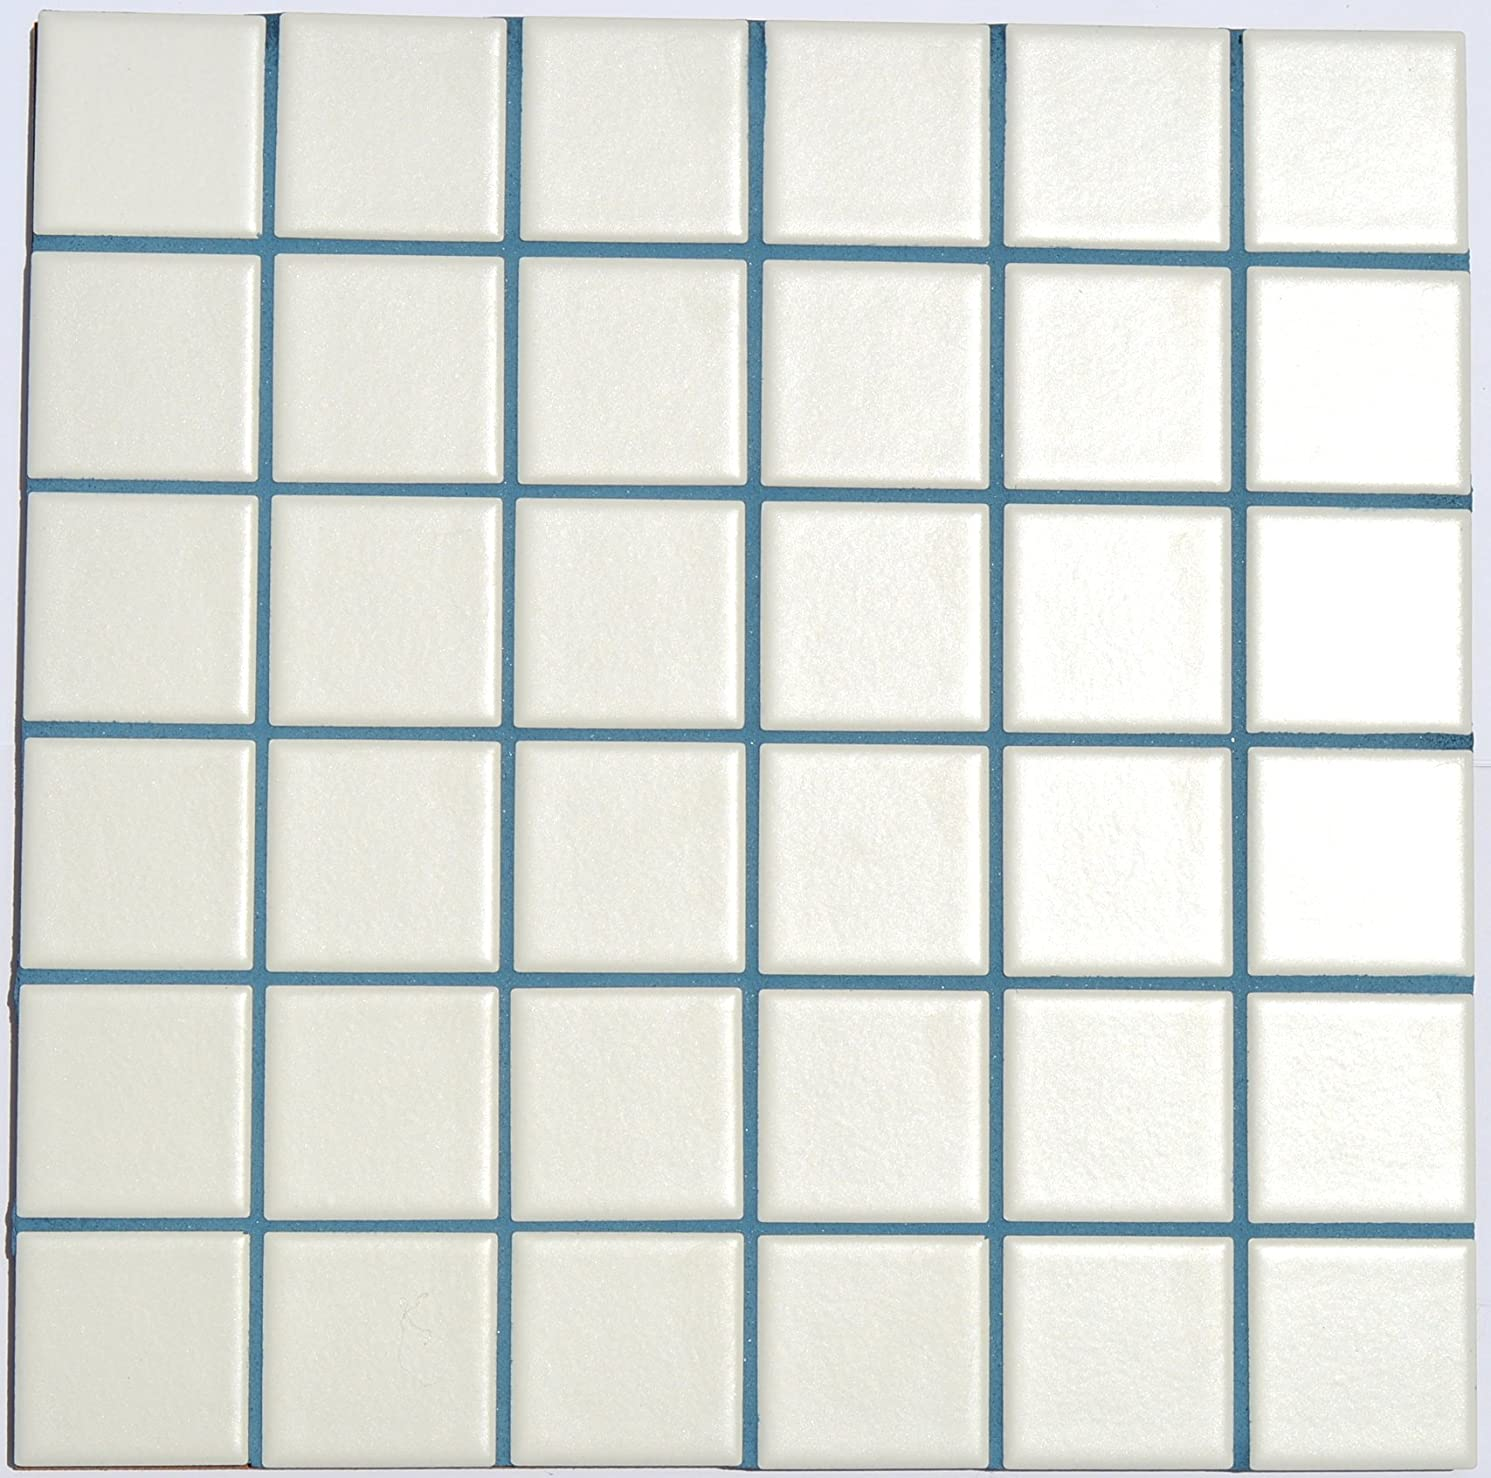 Williamsburg Blue Unsanded Tile Grout - 10 lbs - with Blue Pigment in The Mix.